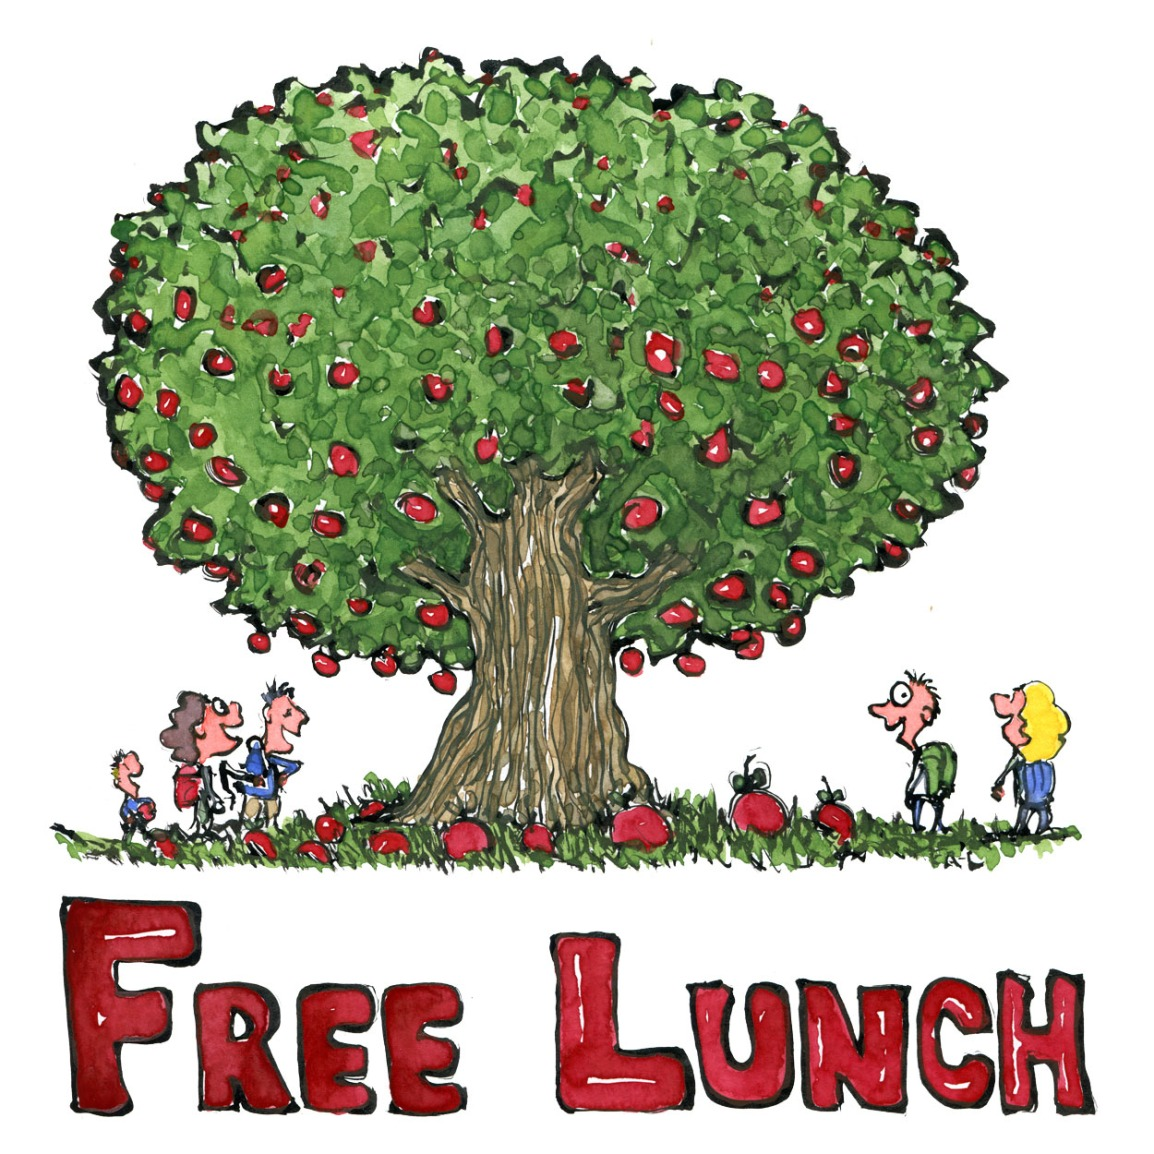 Free lunch - wild apple tree with apples in nature with smiling hikers and the text free lunch